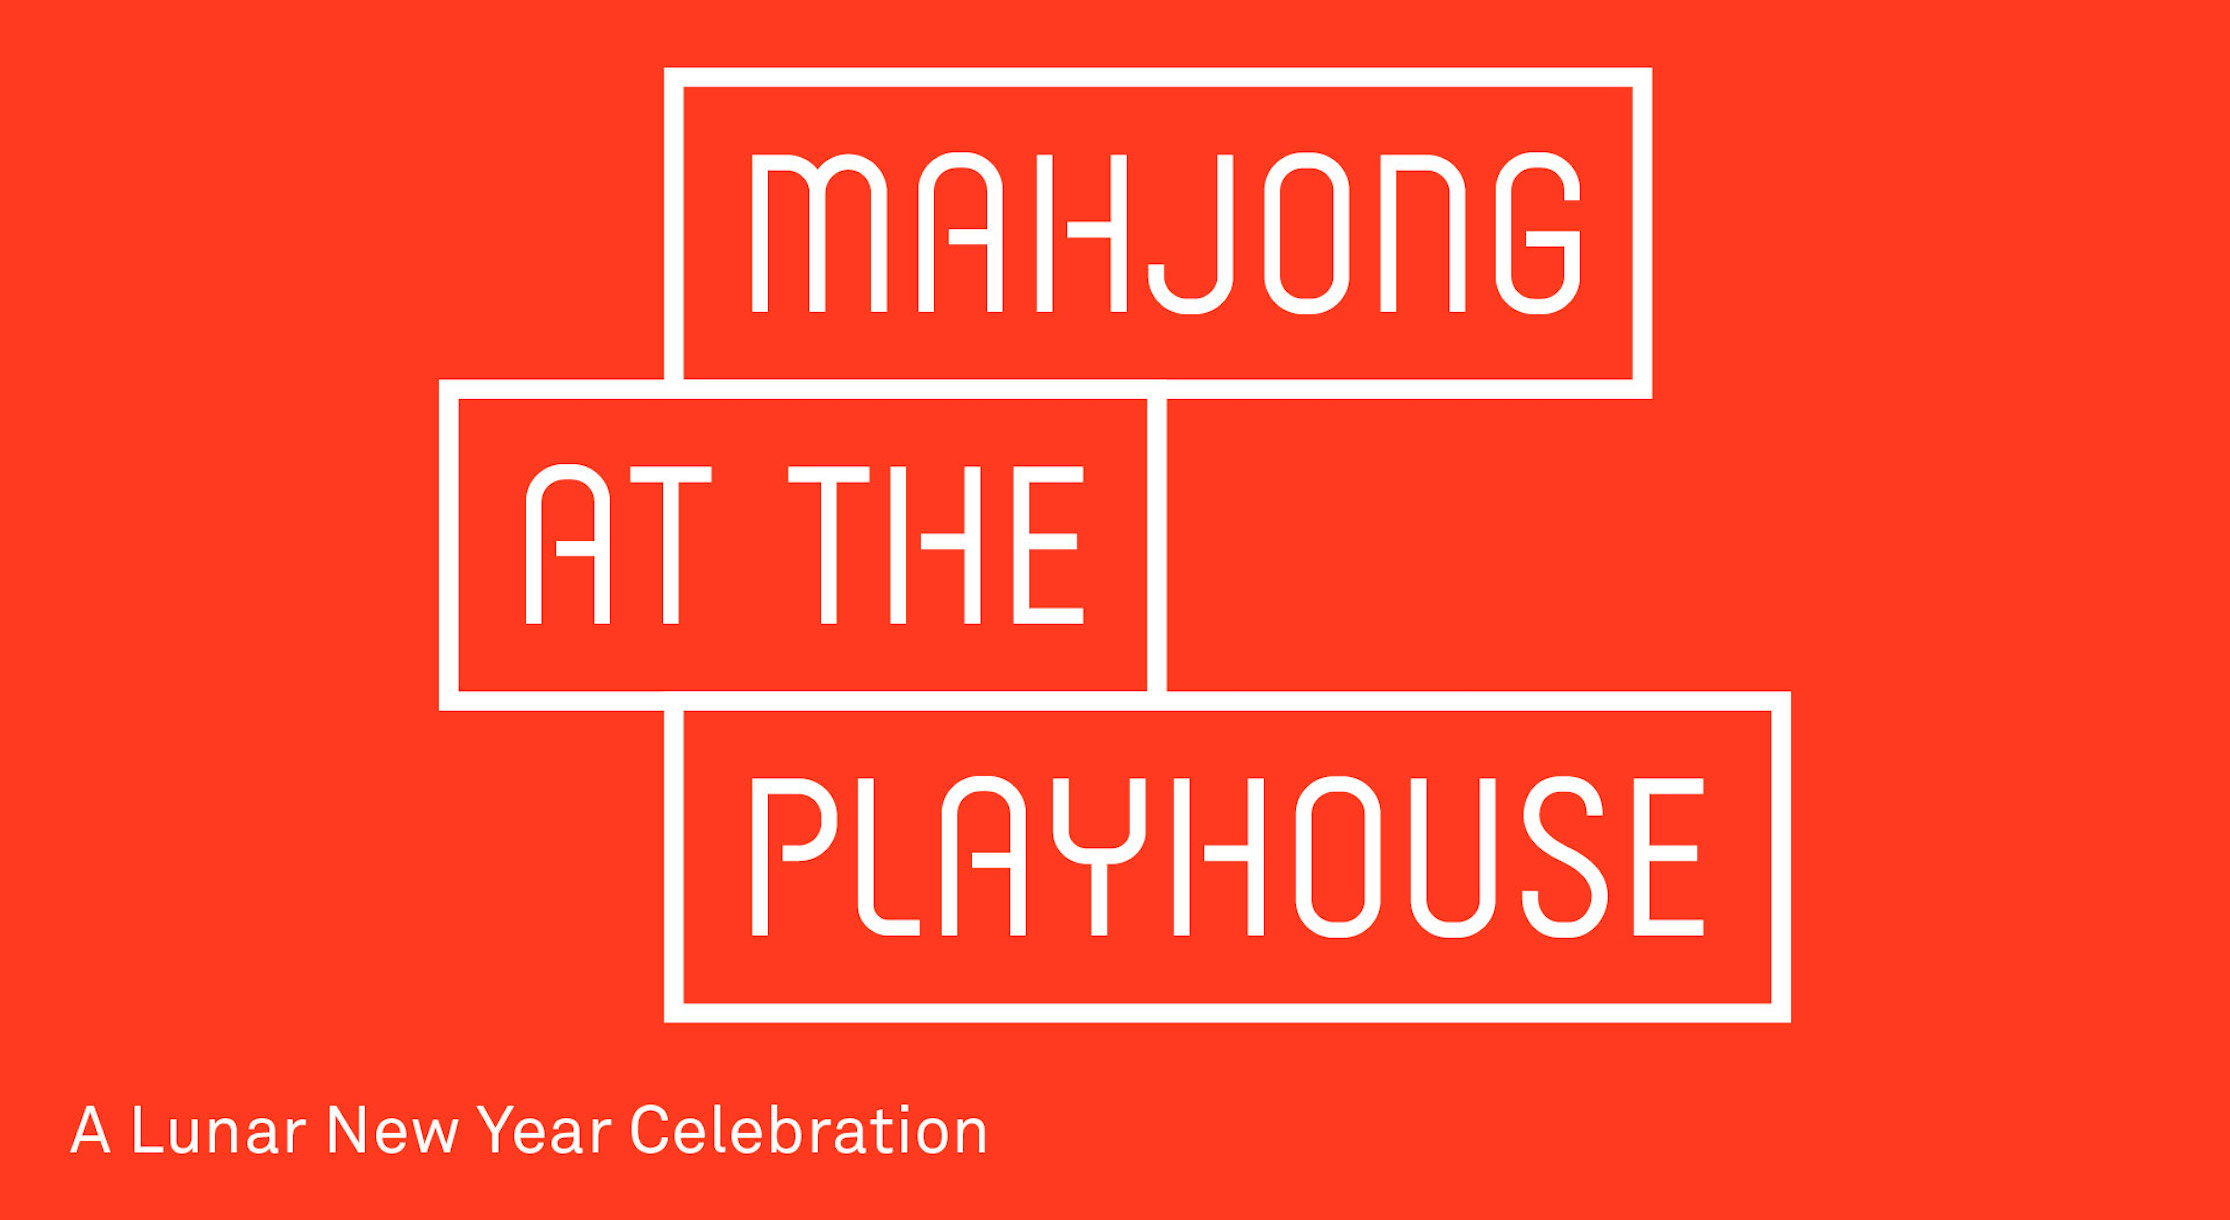 Mahjong at the Playhouse